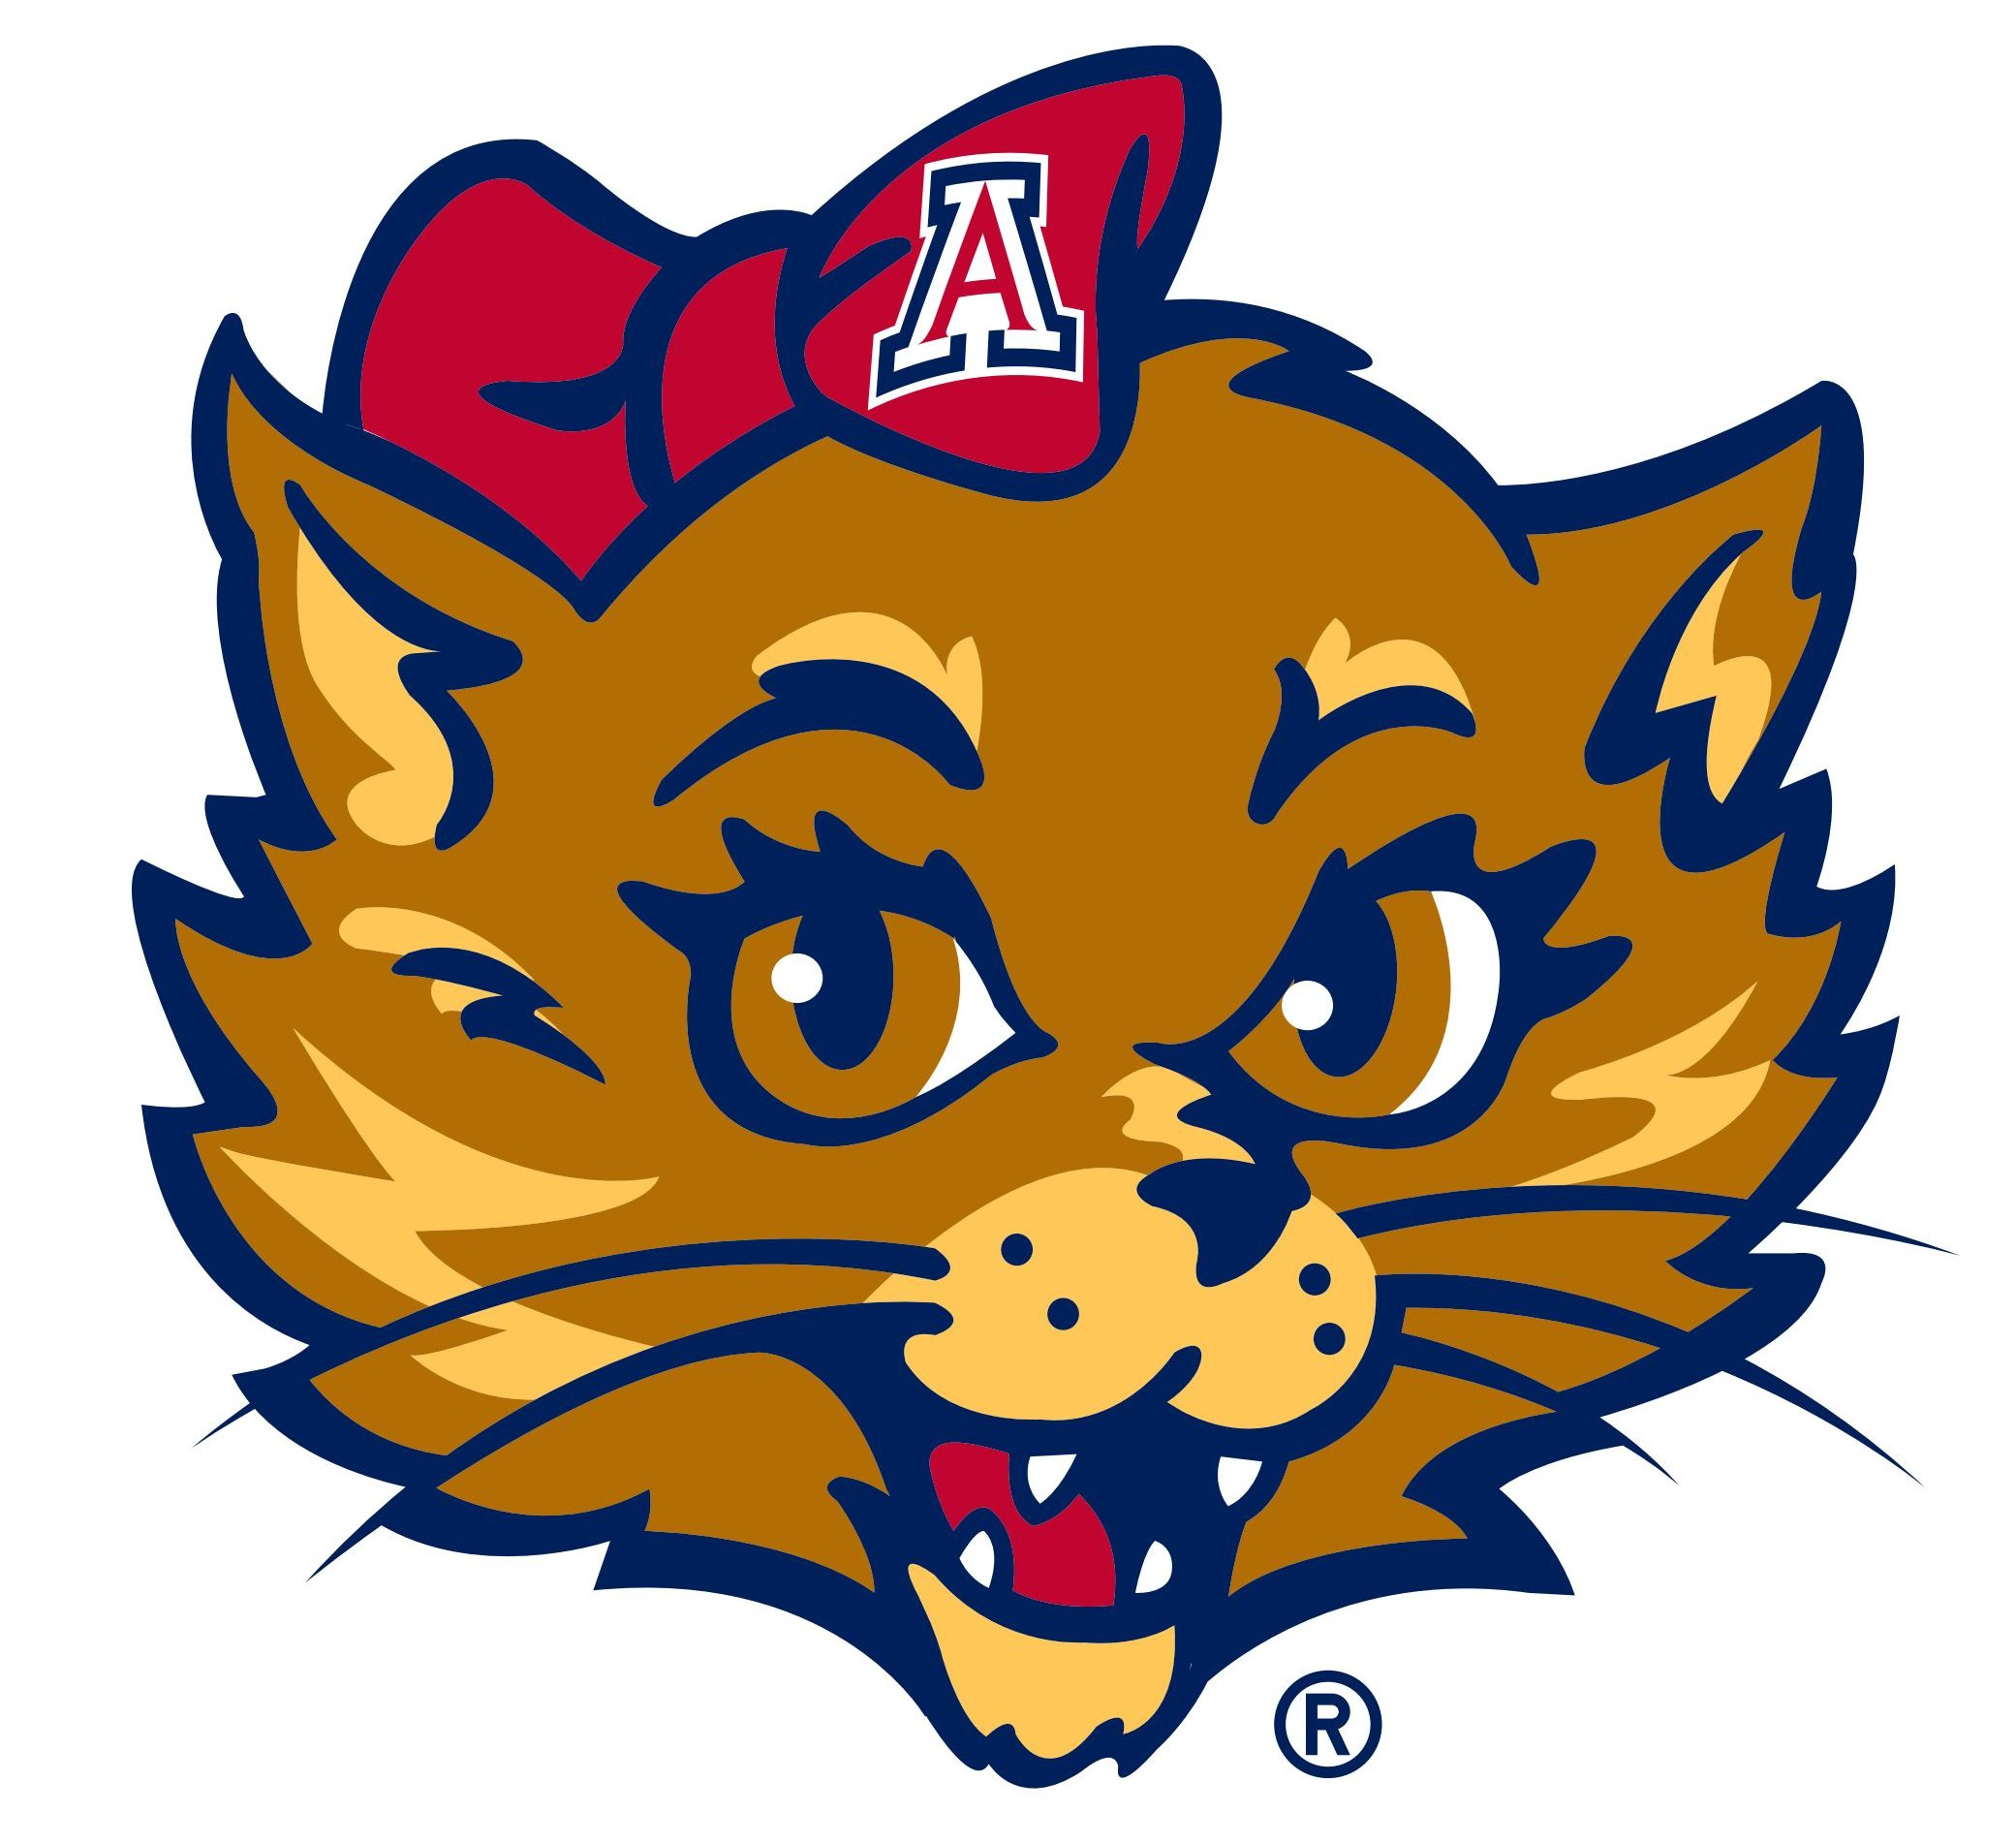 University of Arizona Seal and Logos Vector Icon Template Clipart.